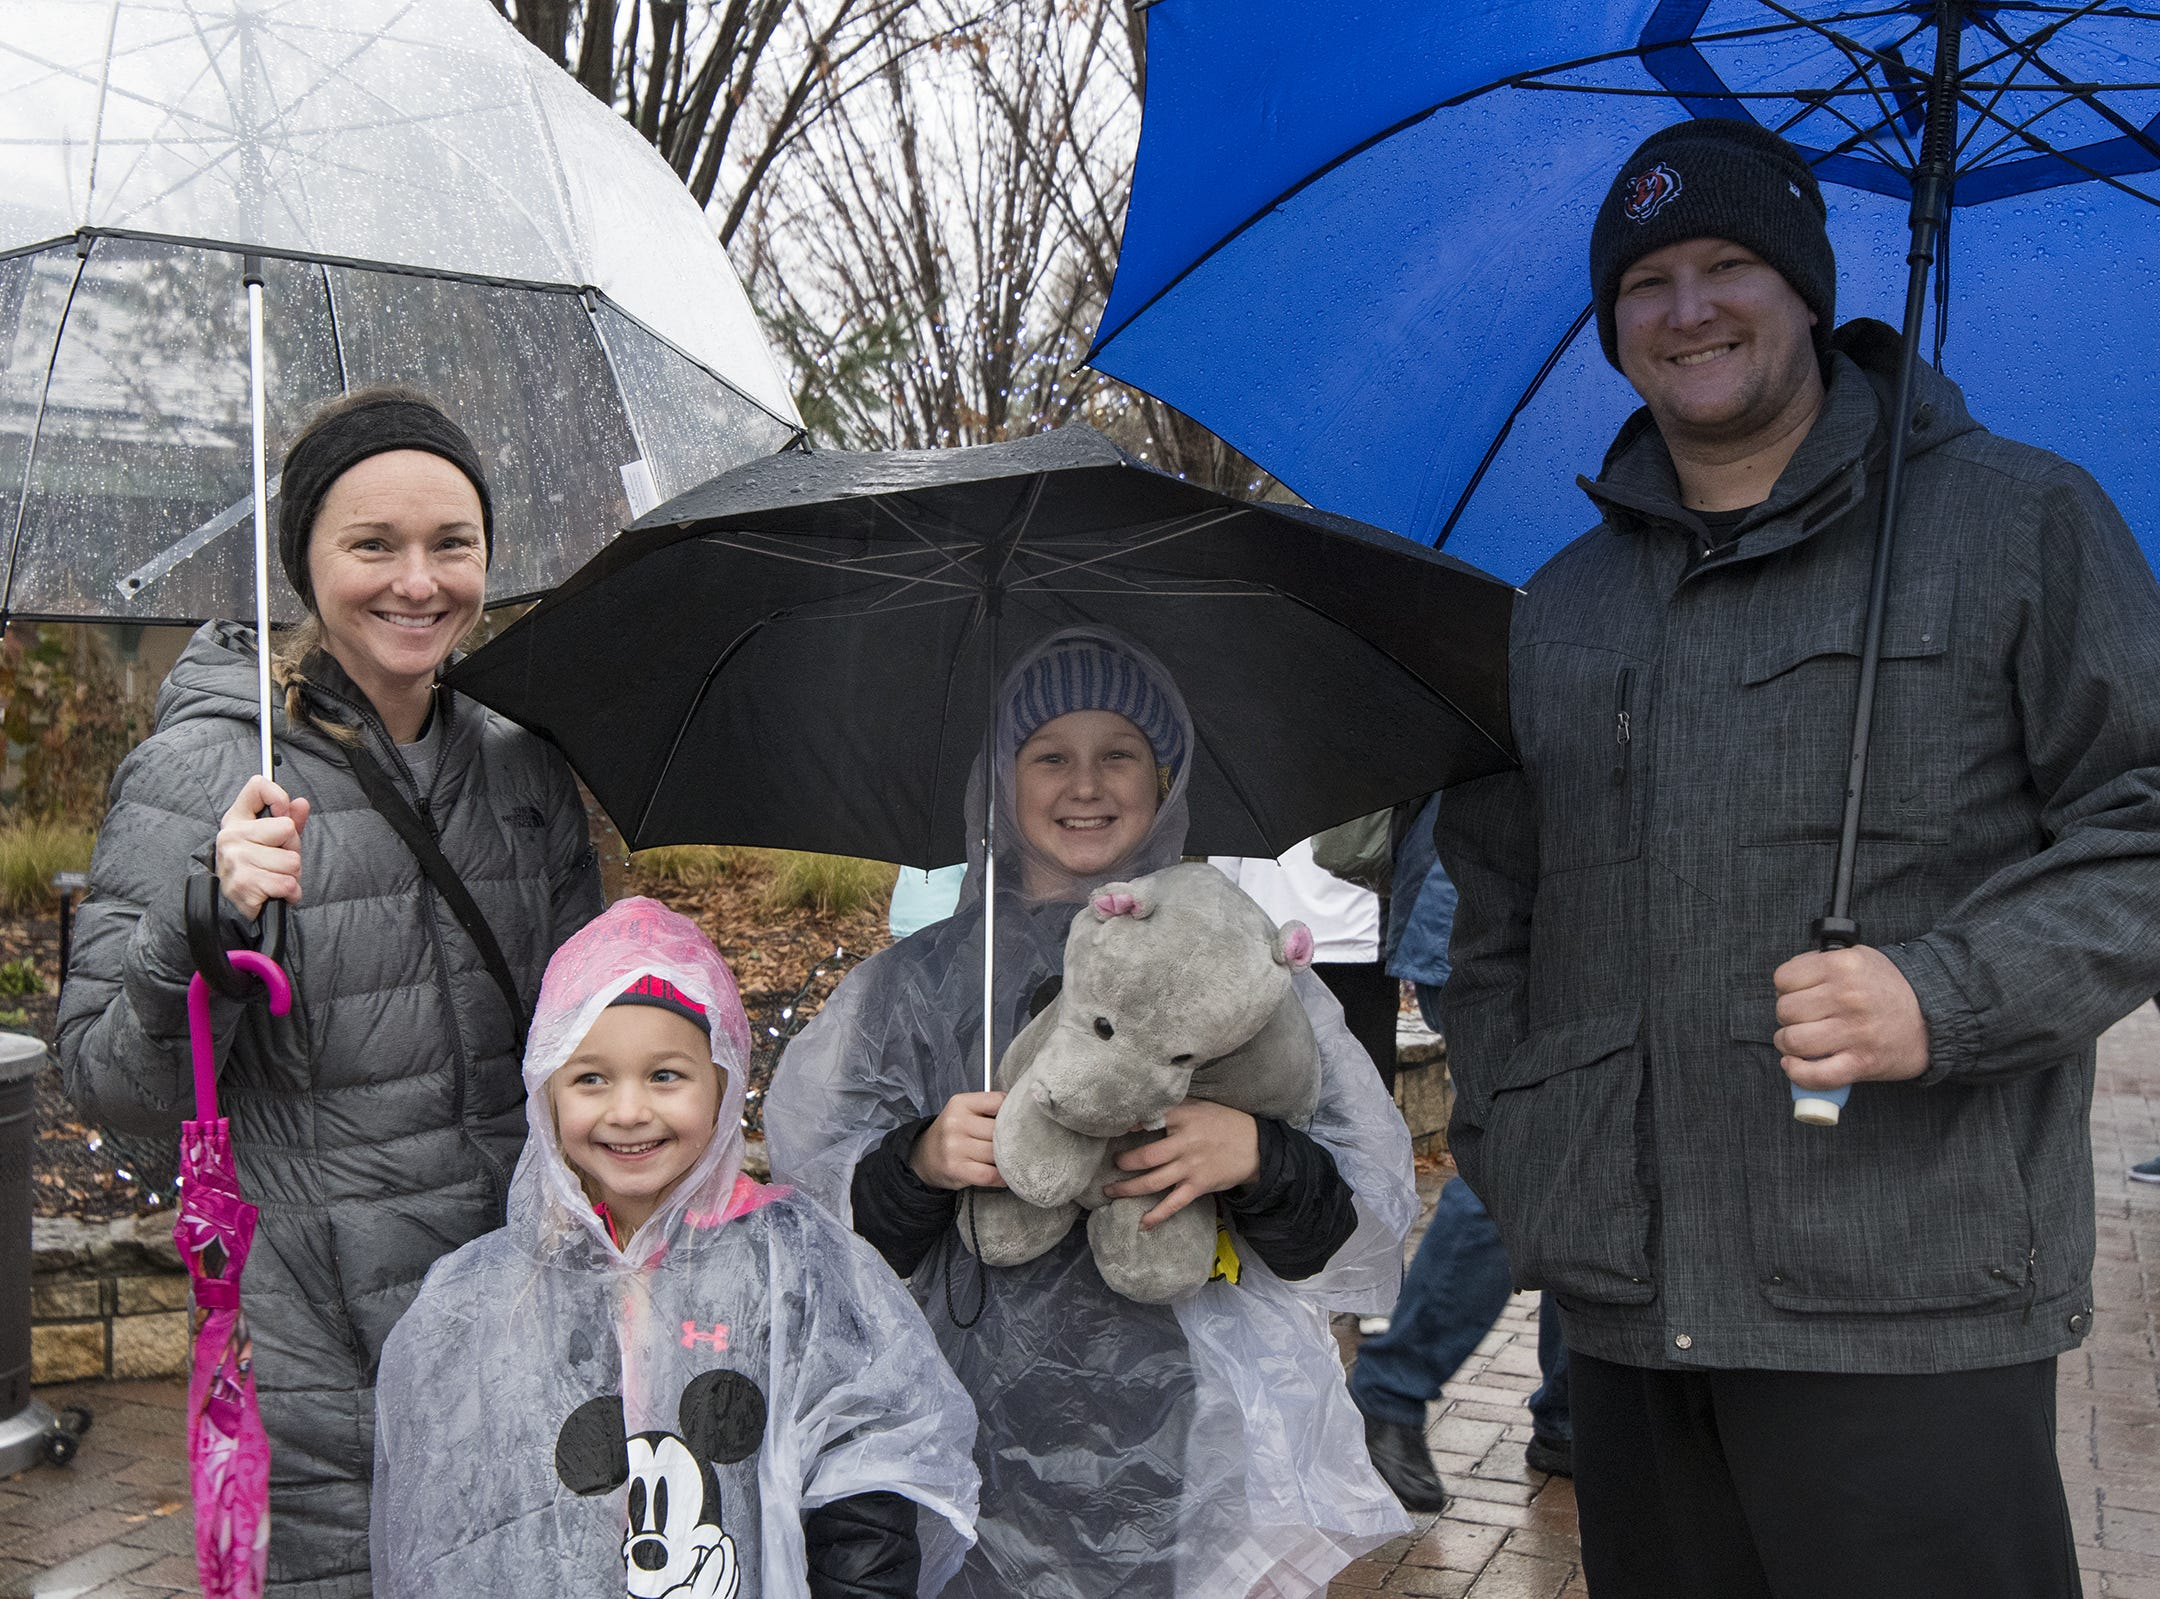 Jessica, Alli, and Paisley Meyers and Dan Hiser try to stay try at the Cincinnati Zoo's Fiona 1k walk in honor of the beloved hippo's 1,000-pound milestone Saturday, December 1, 2018 in Cincinnati, Ohio.